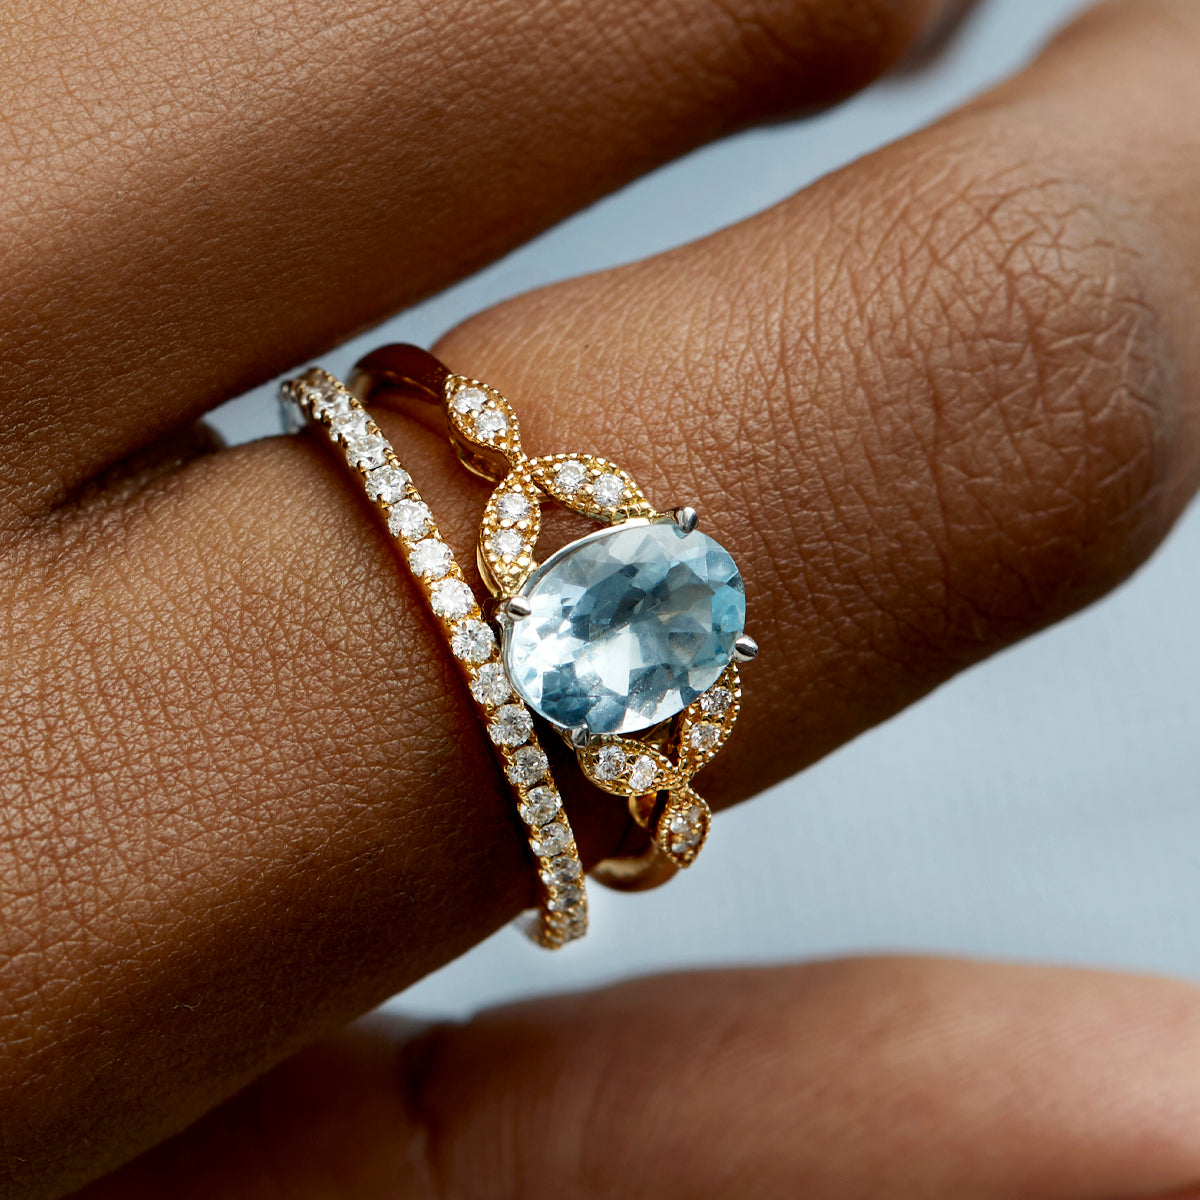 Engagement ring, engagement ring trends, modern / alternative / unique engagement ring